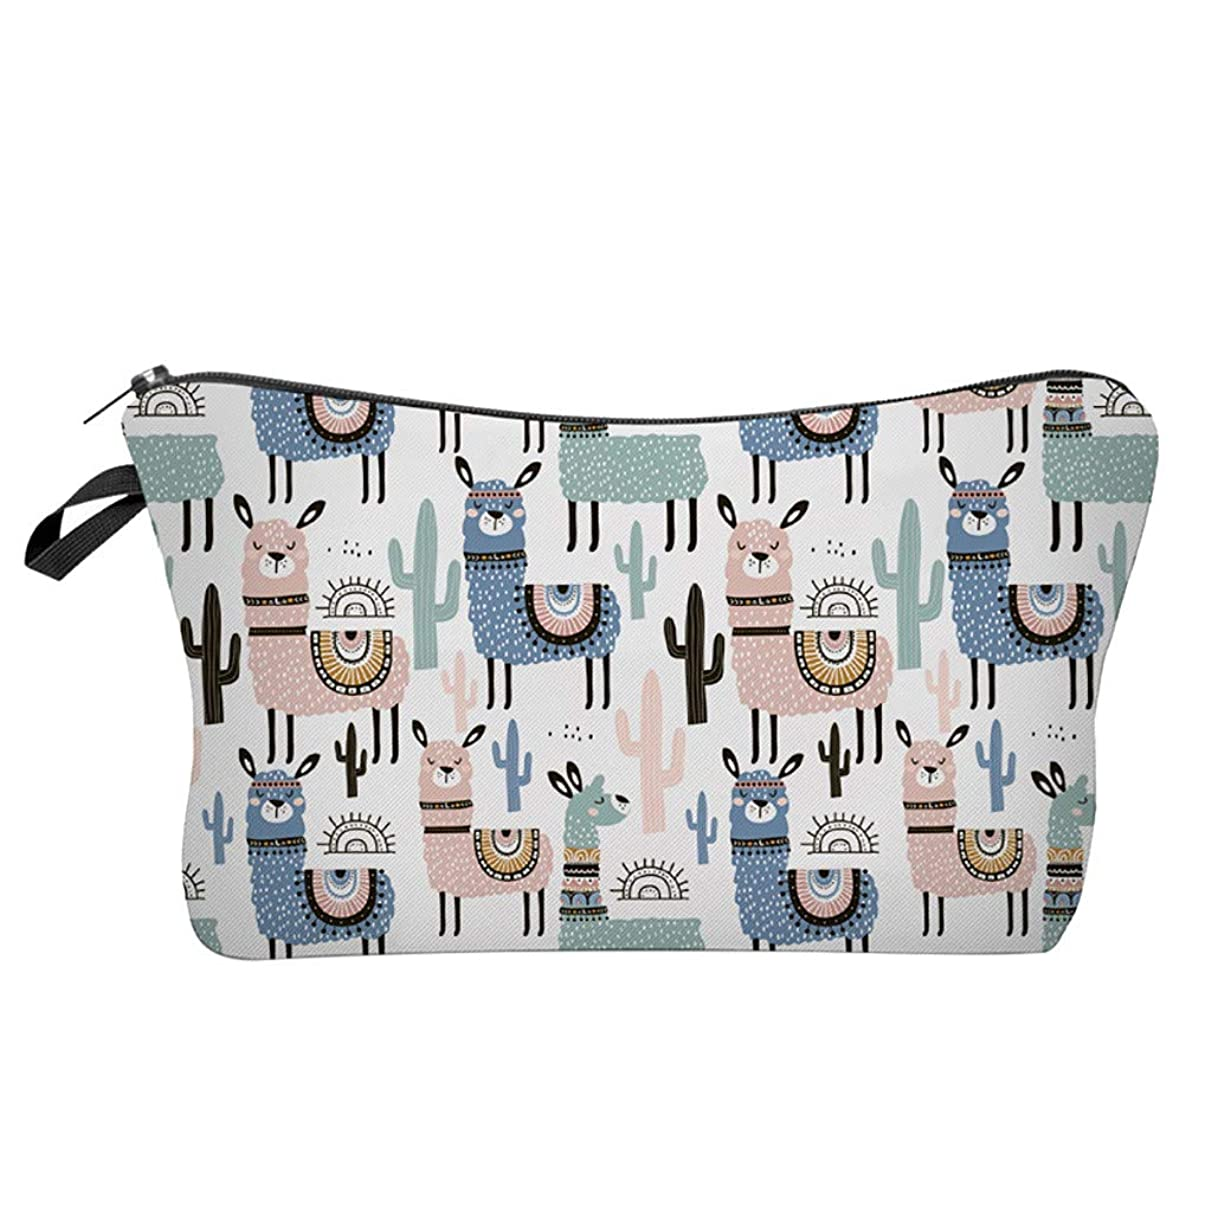 Pausseo Women Letters Alpaca Printing Makeup Cosmetic Brushes Bag Toiletry Storage Travel Handbag Student Pencil Zipper Clutch Case Stationery Box Pouch School Supplies Coins Change Pen Purse Pack